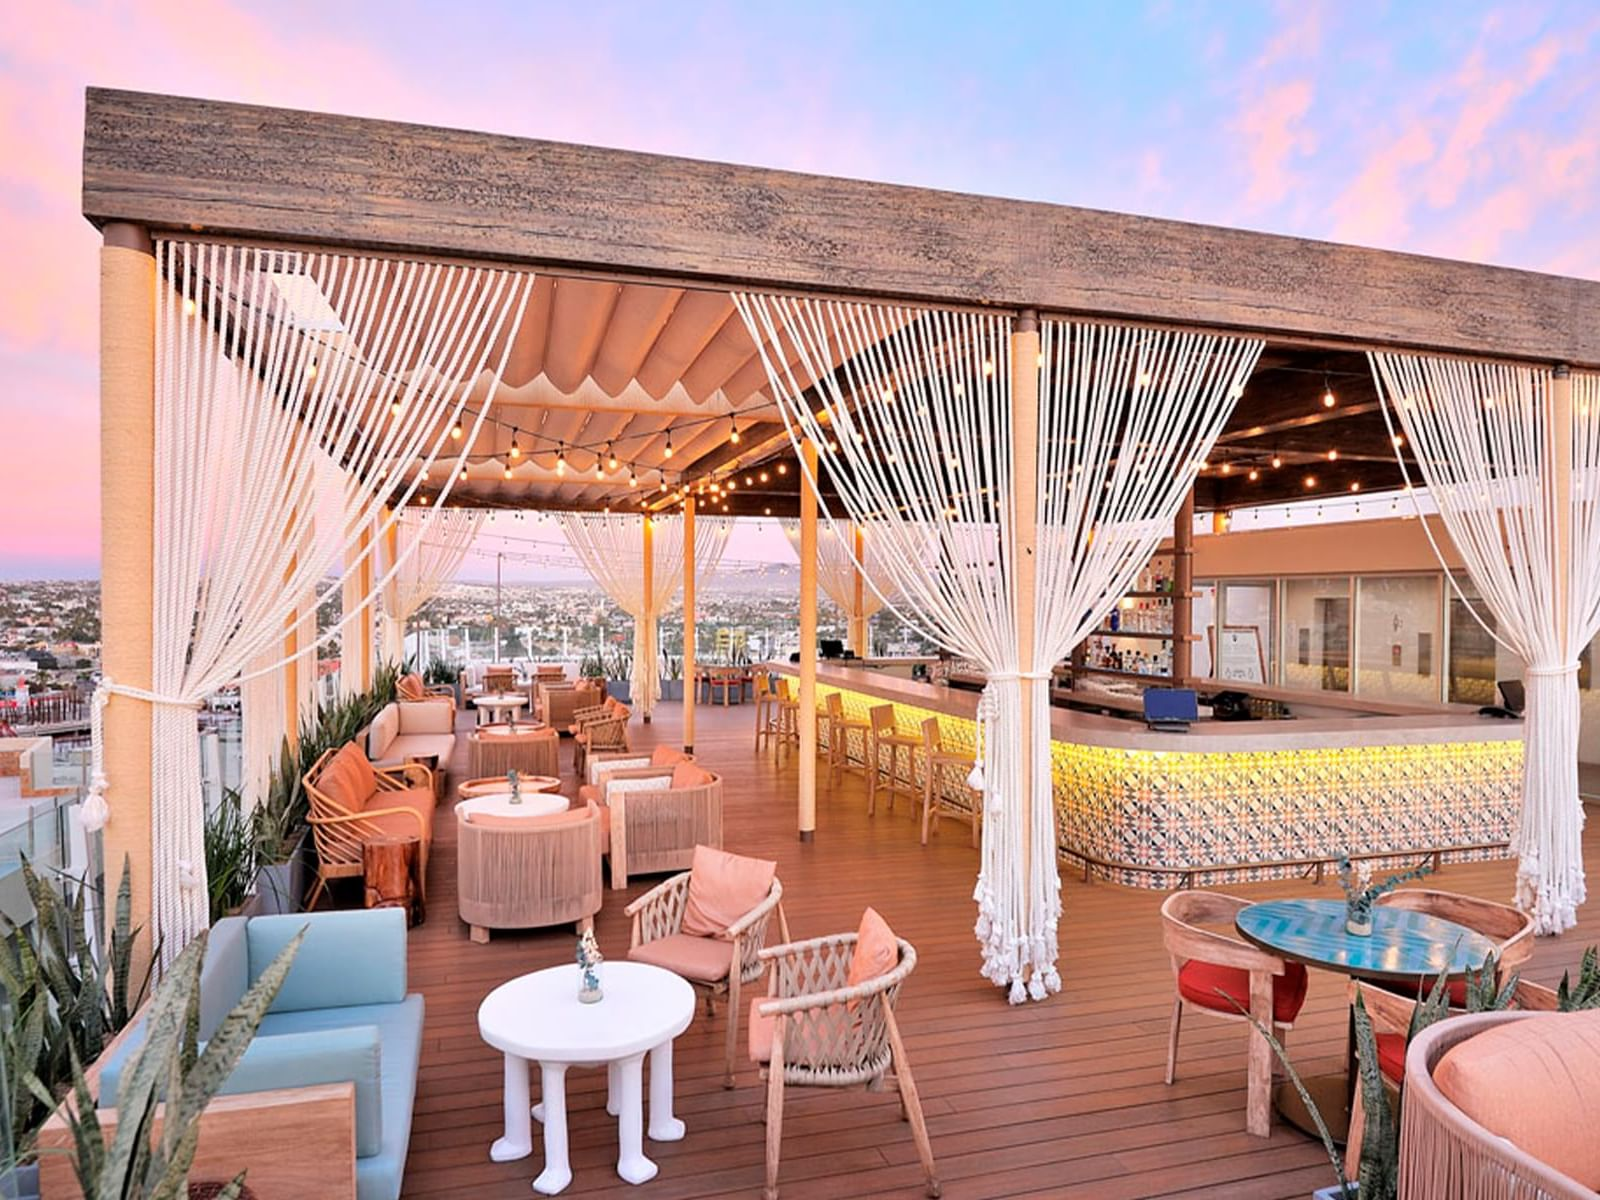 Seating area in Rooftop 360 at Cabo Villas Beach Resort